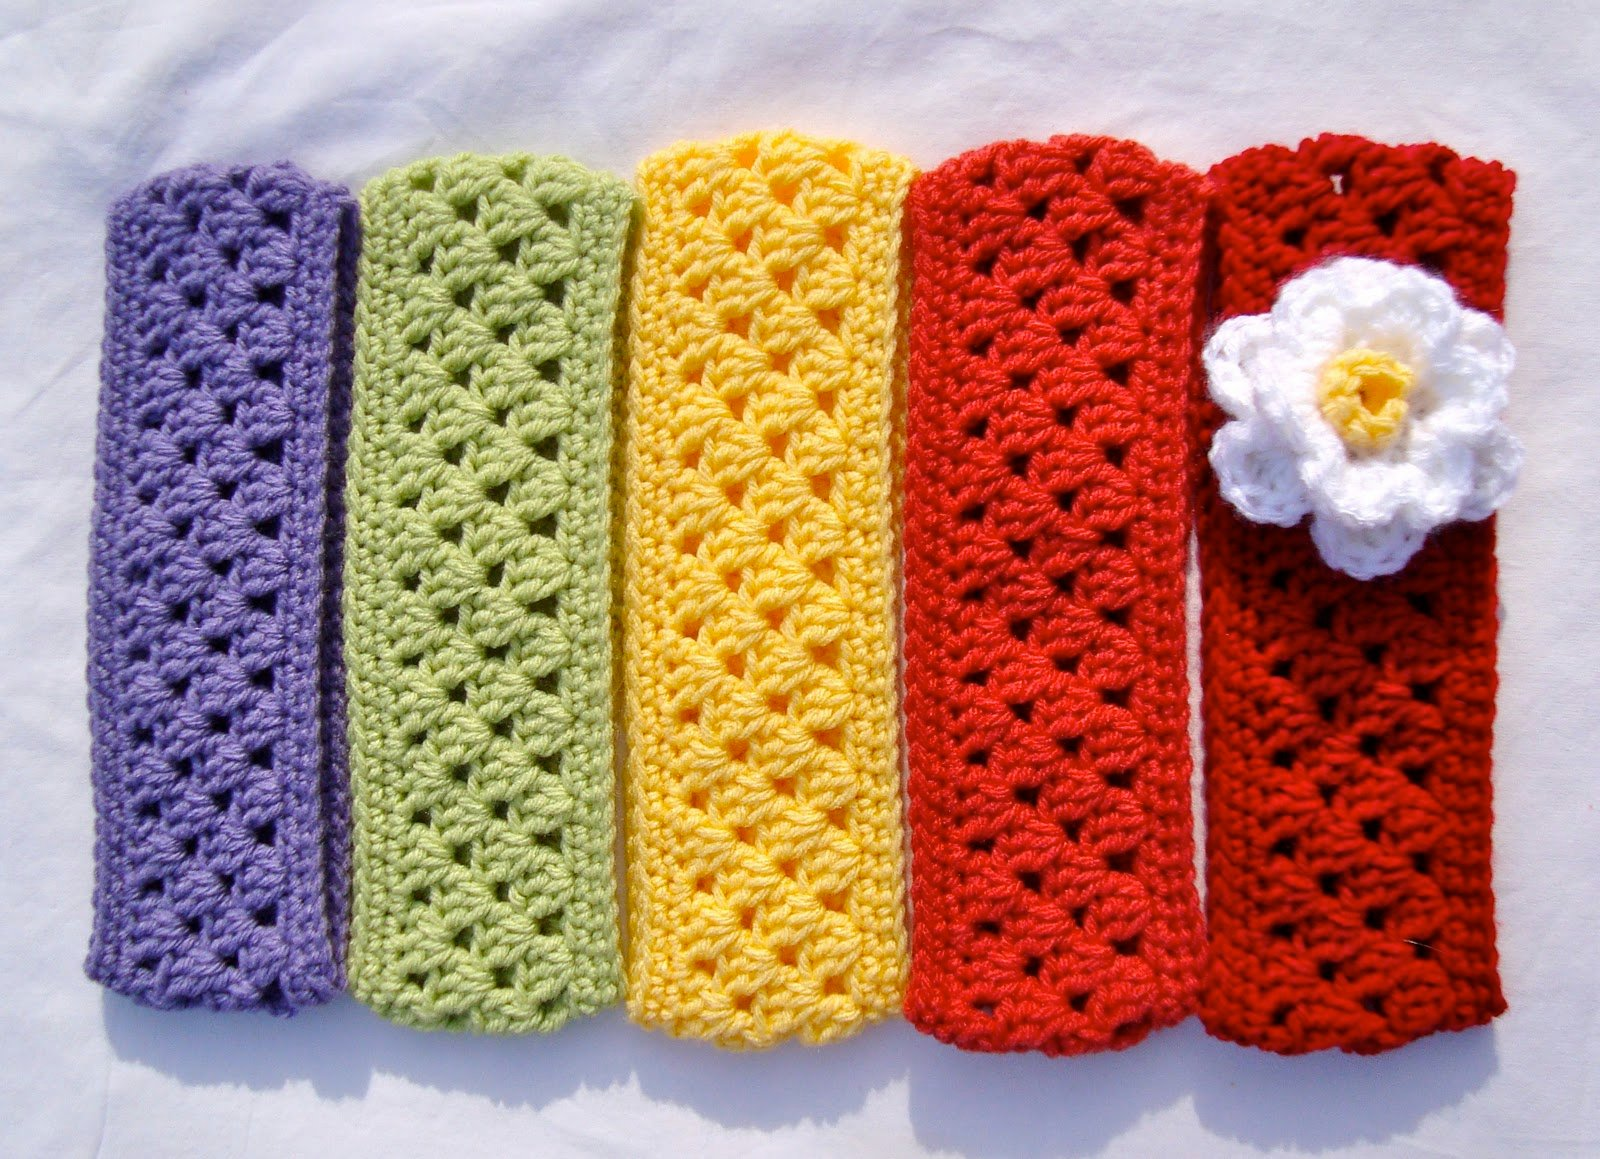 Crochet Flower Ear Warmer Tutorial : 16 Crochet Ear Warmer Patterns Guide Patterns